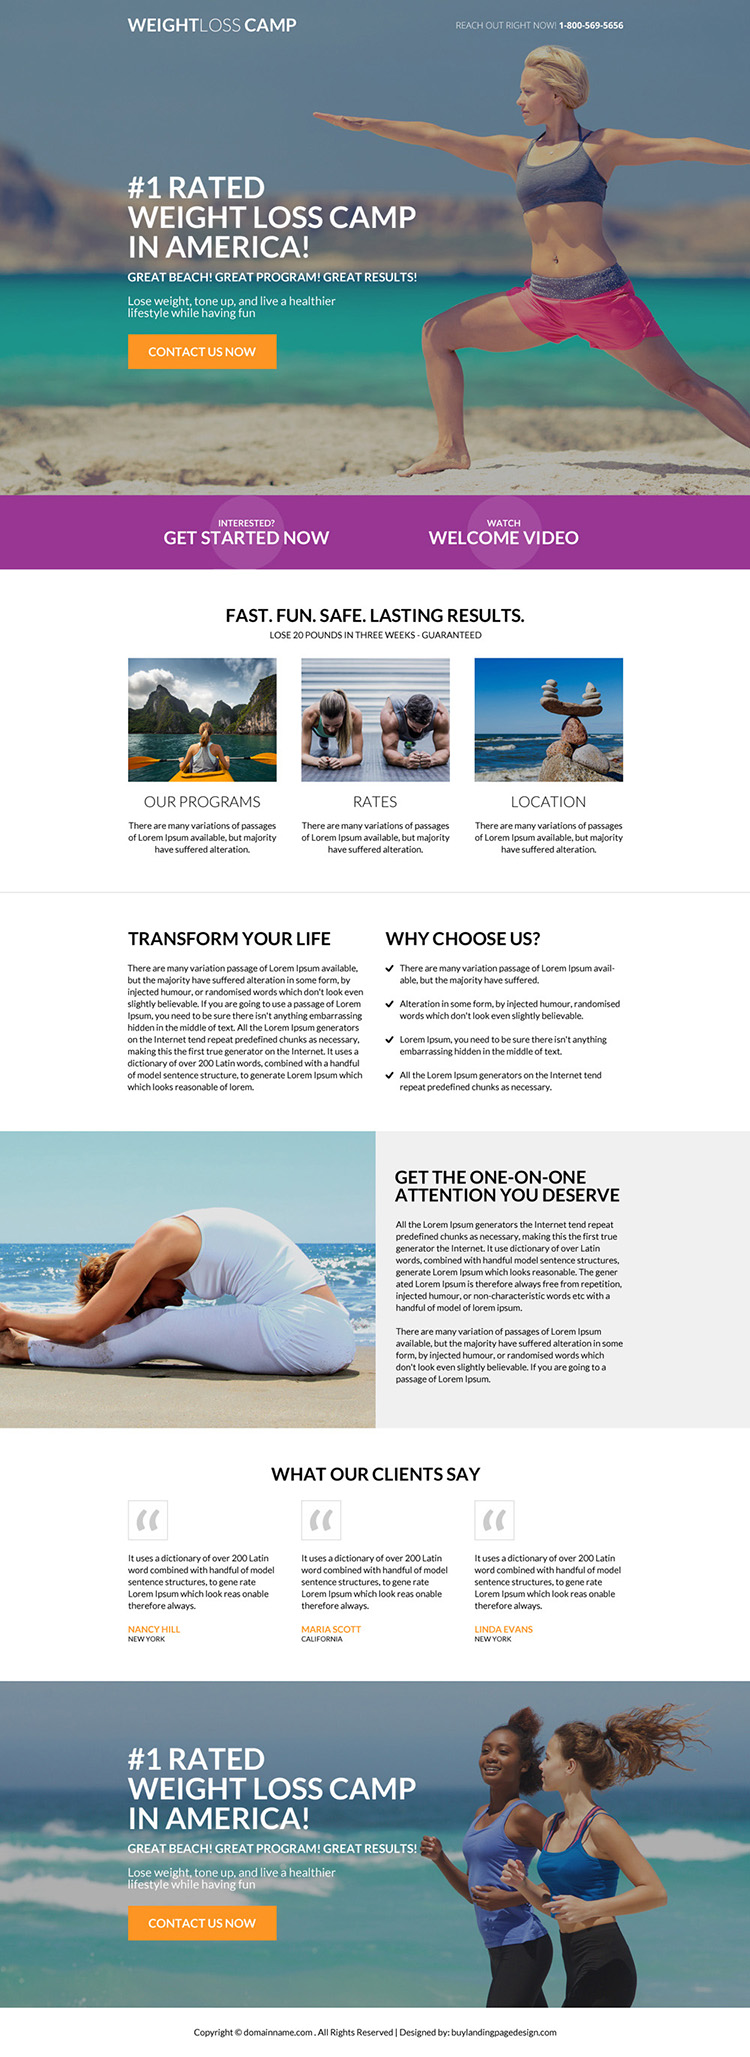 weight loss camp responsive landing page design